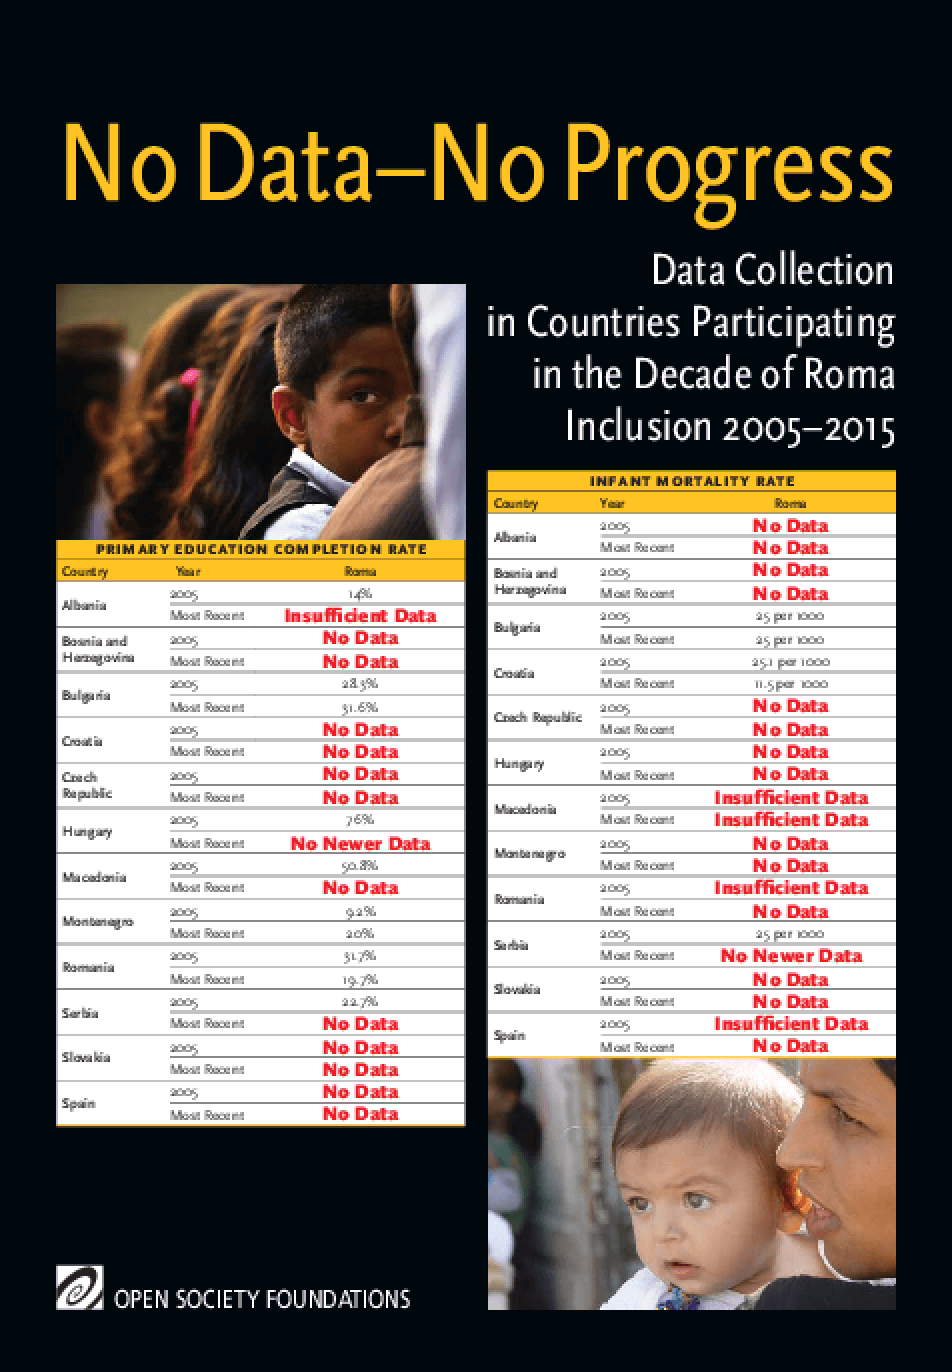 No Data -- No Progress: Data Collection in Countries Participating in the Decade of Roma Inclusion 2005-2015